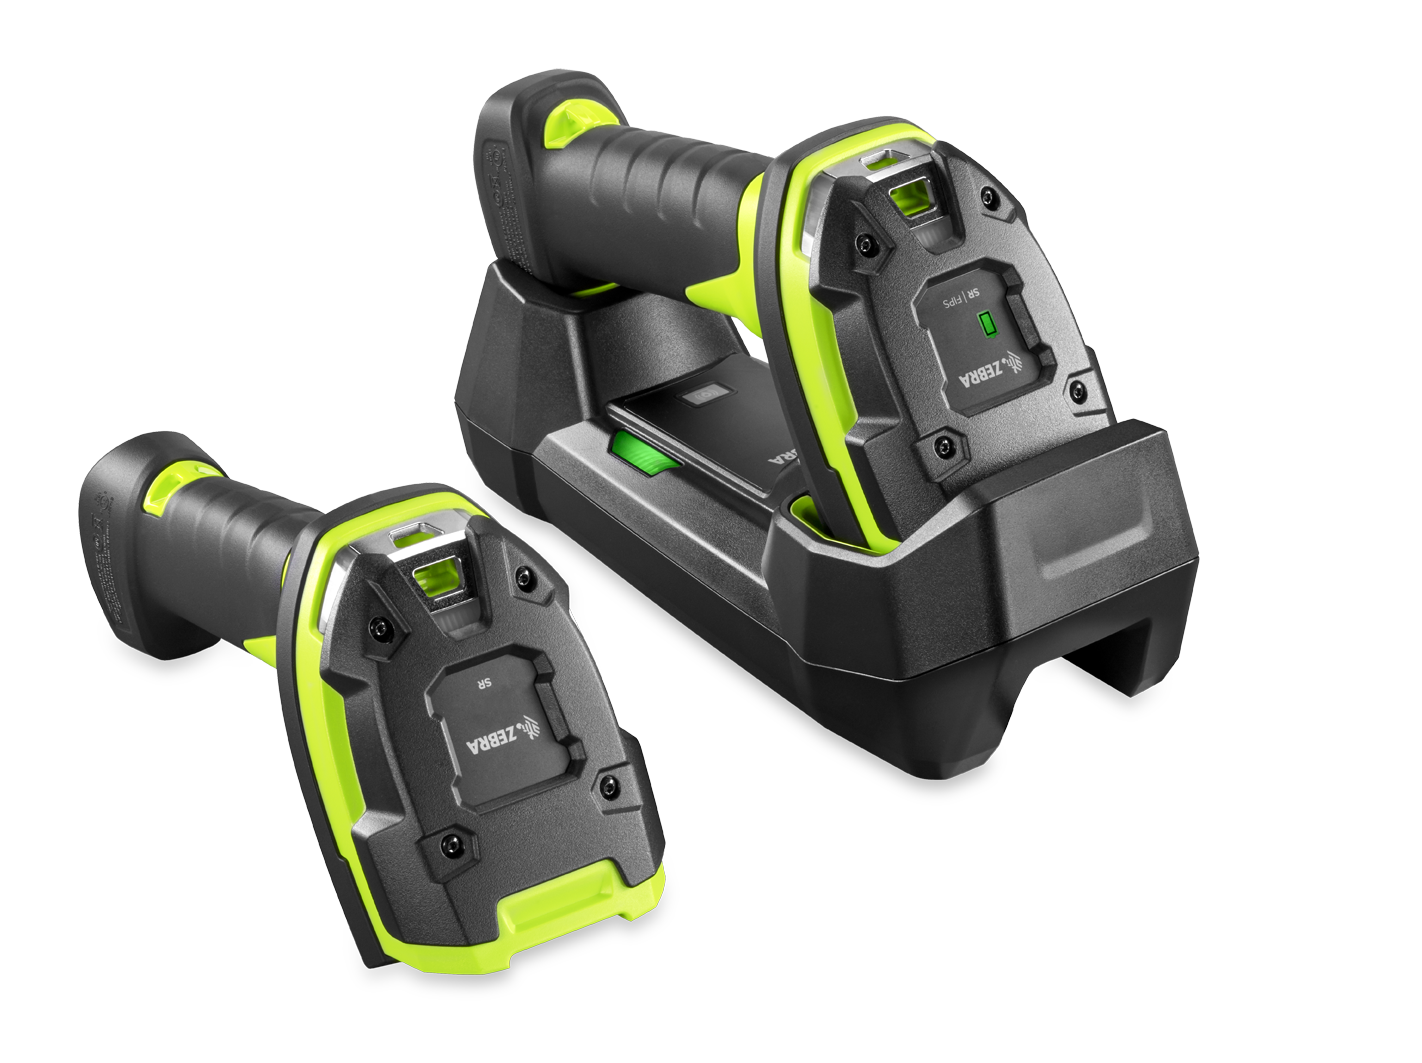 3600 series ultra rugged scanners